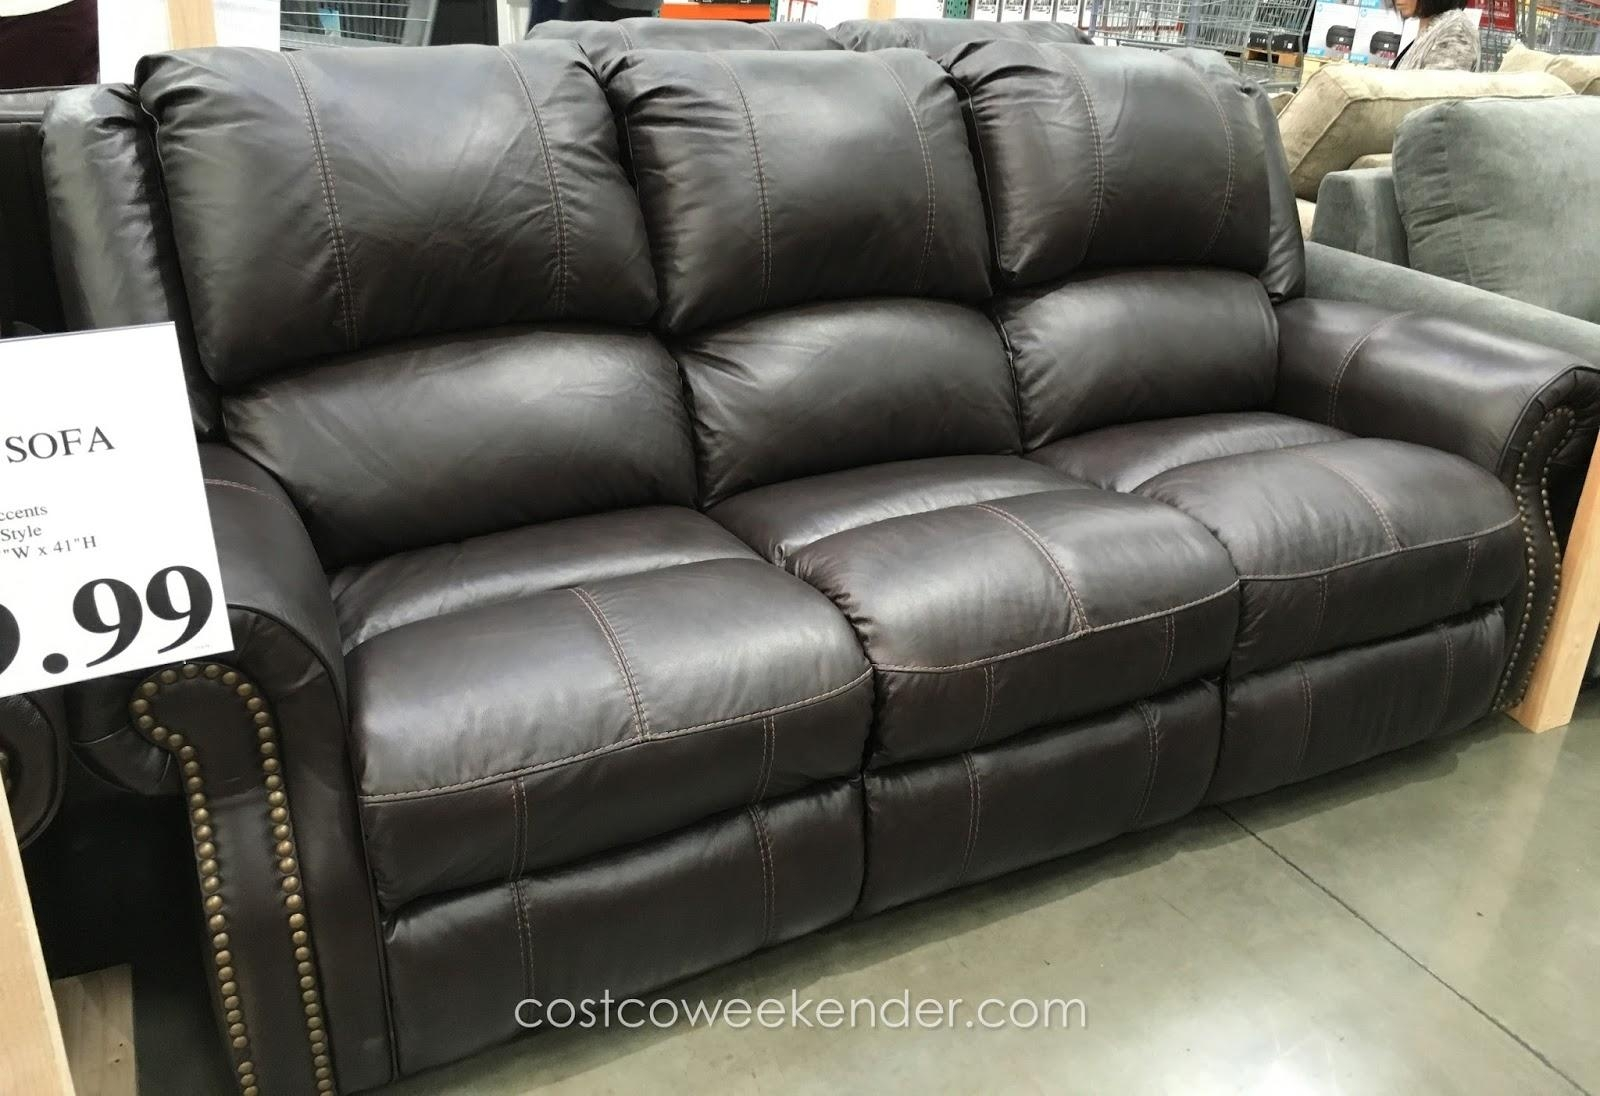 Sofas Center : Surprising Costco Leather Reclining Sofa Photos Regarding Berkline Recliner Sofas (Image 18 of 20)